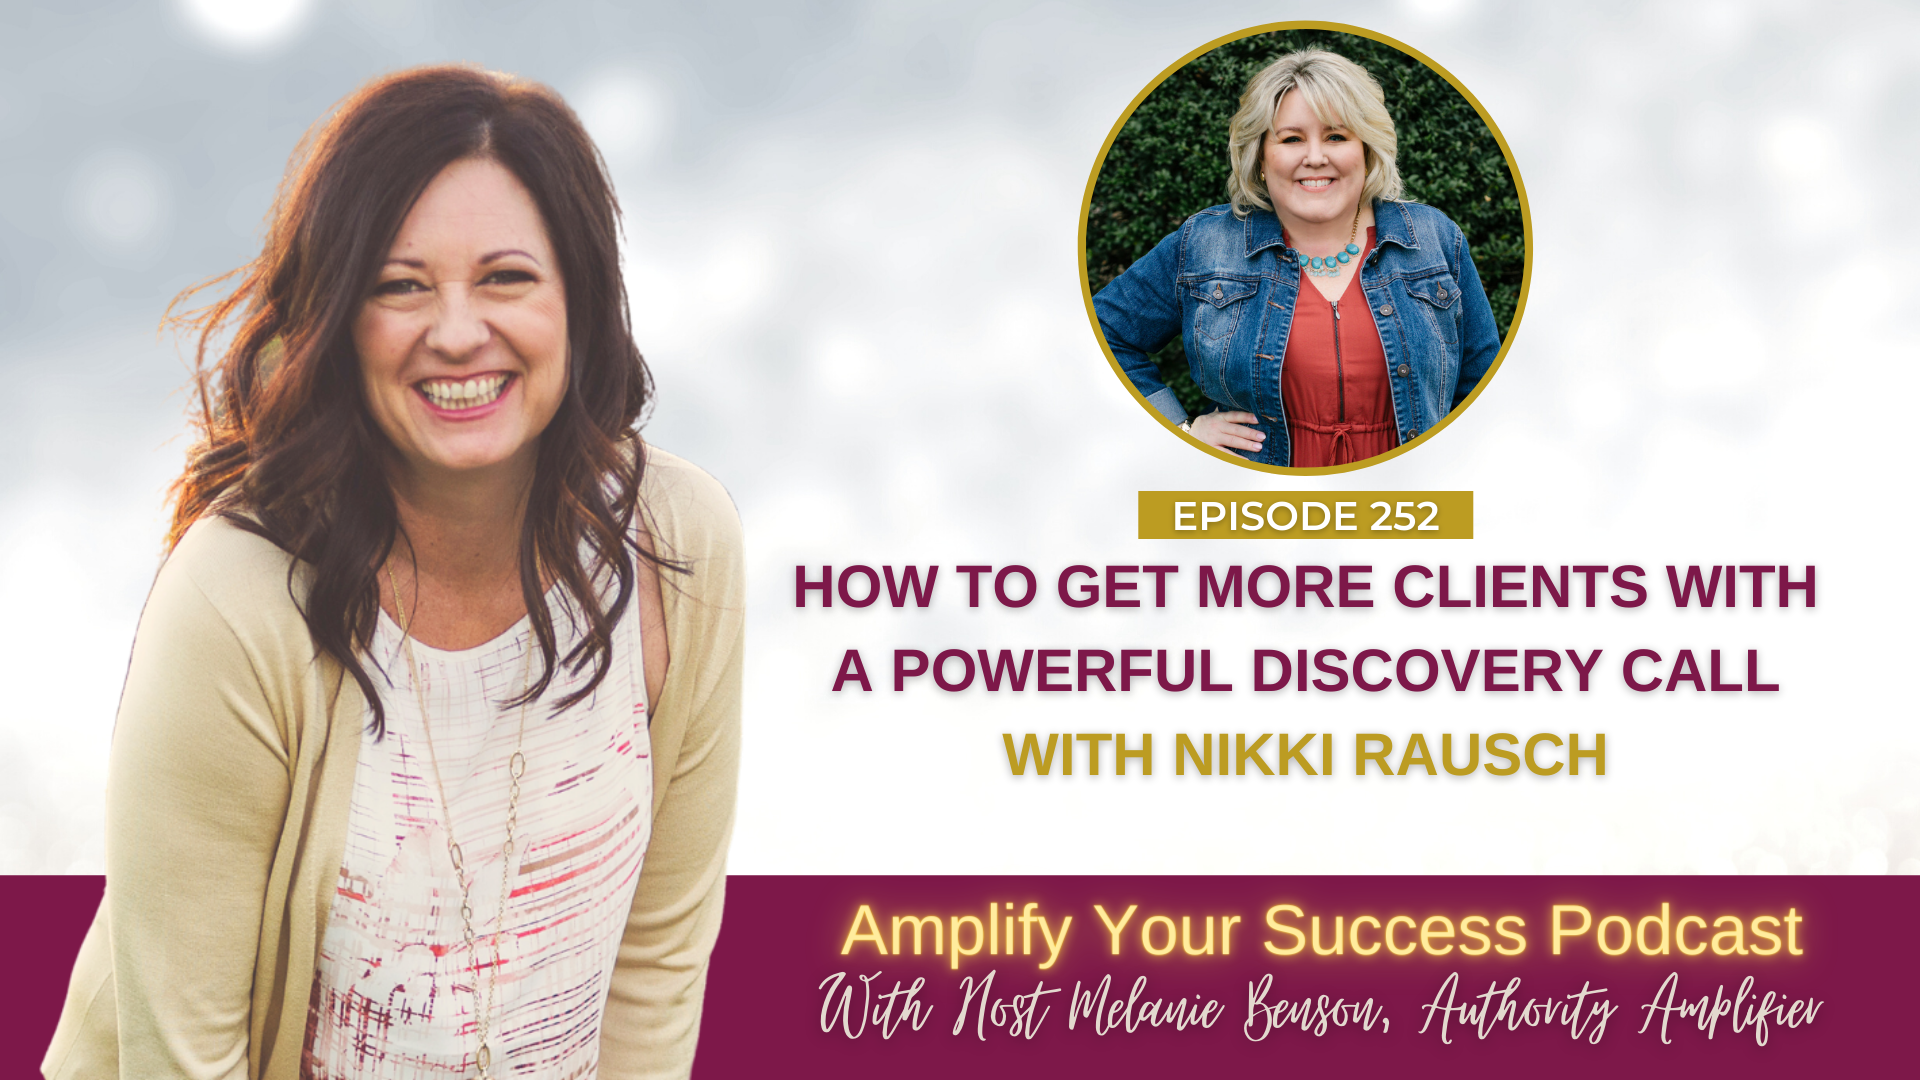 How To Get More Clients With A Powerful Discovery Call